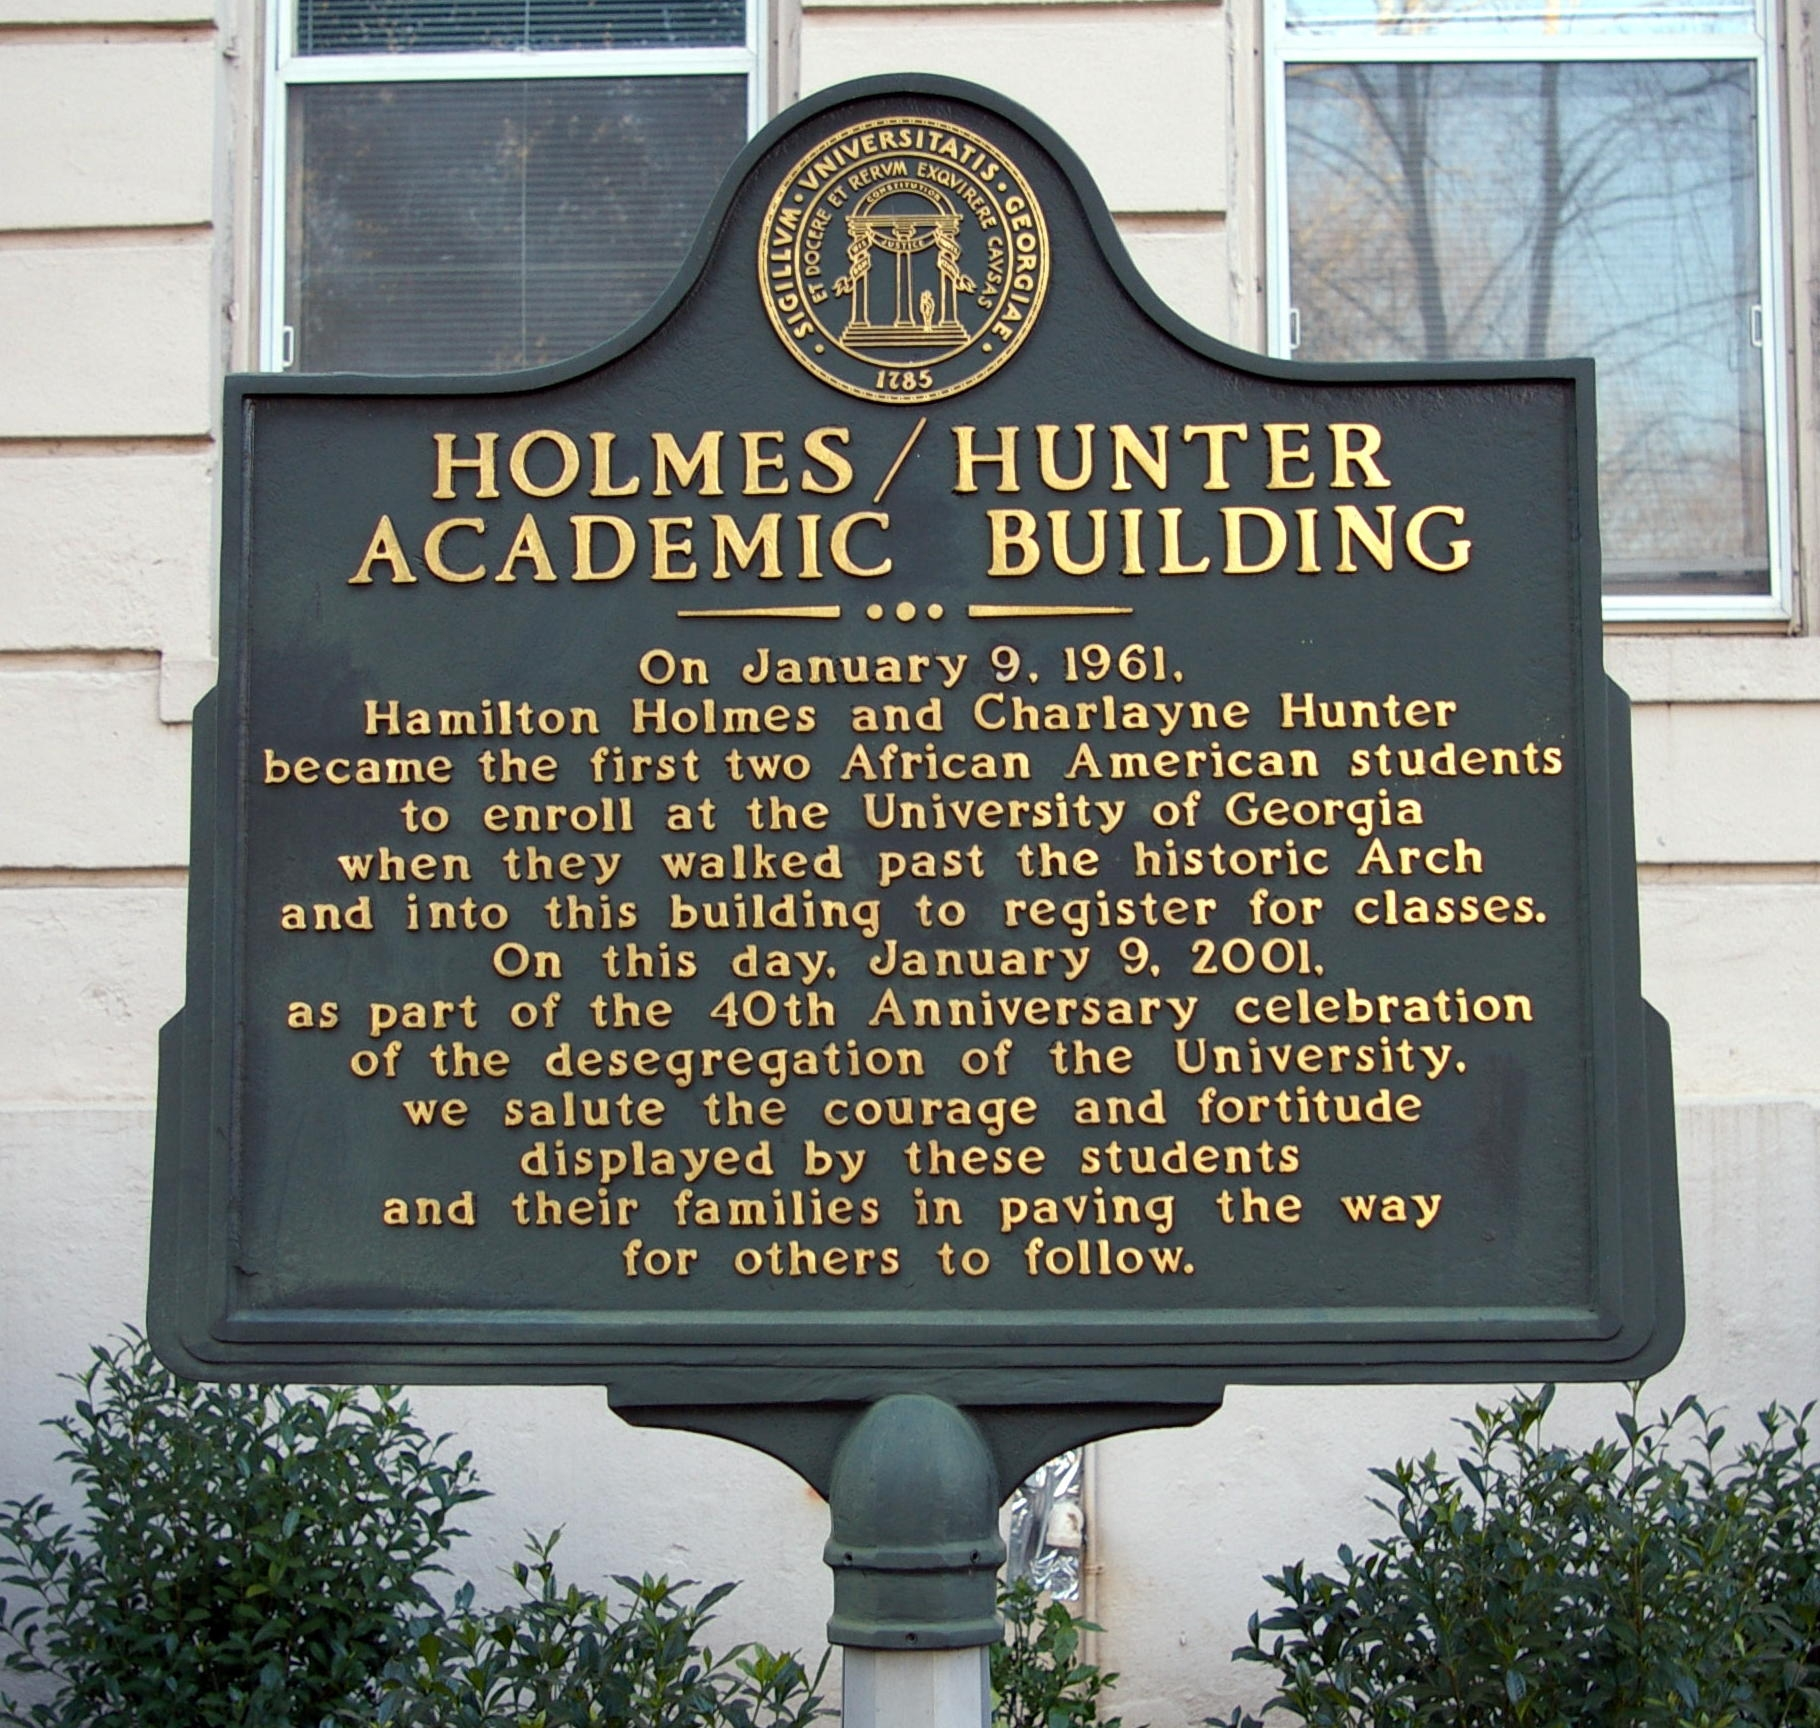 Holmes/Hunter Academic Building Marker